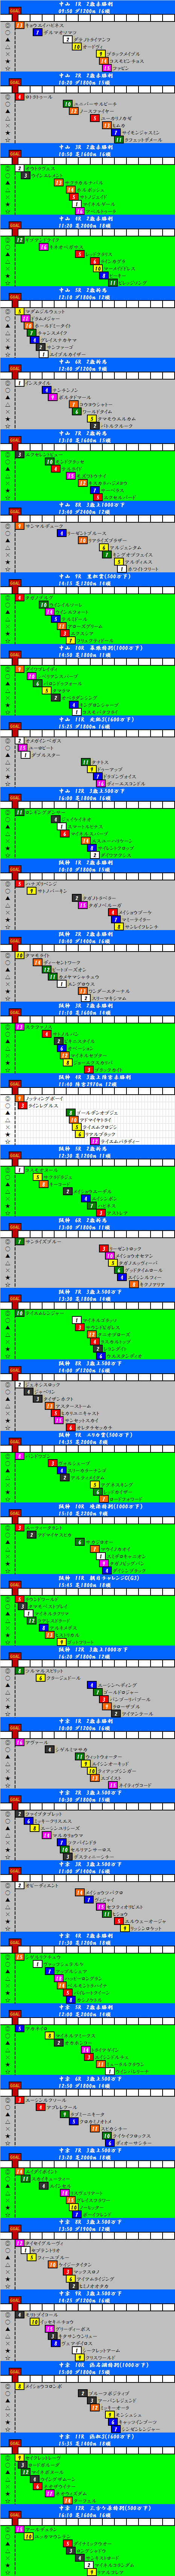 20131207.png